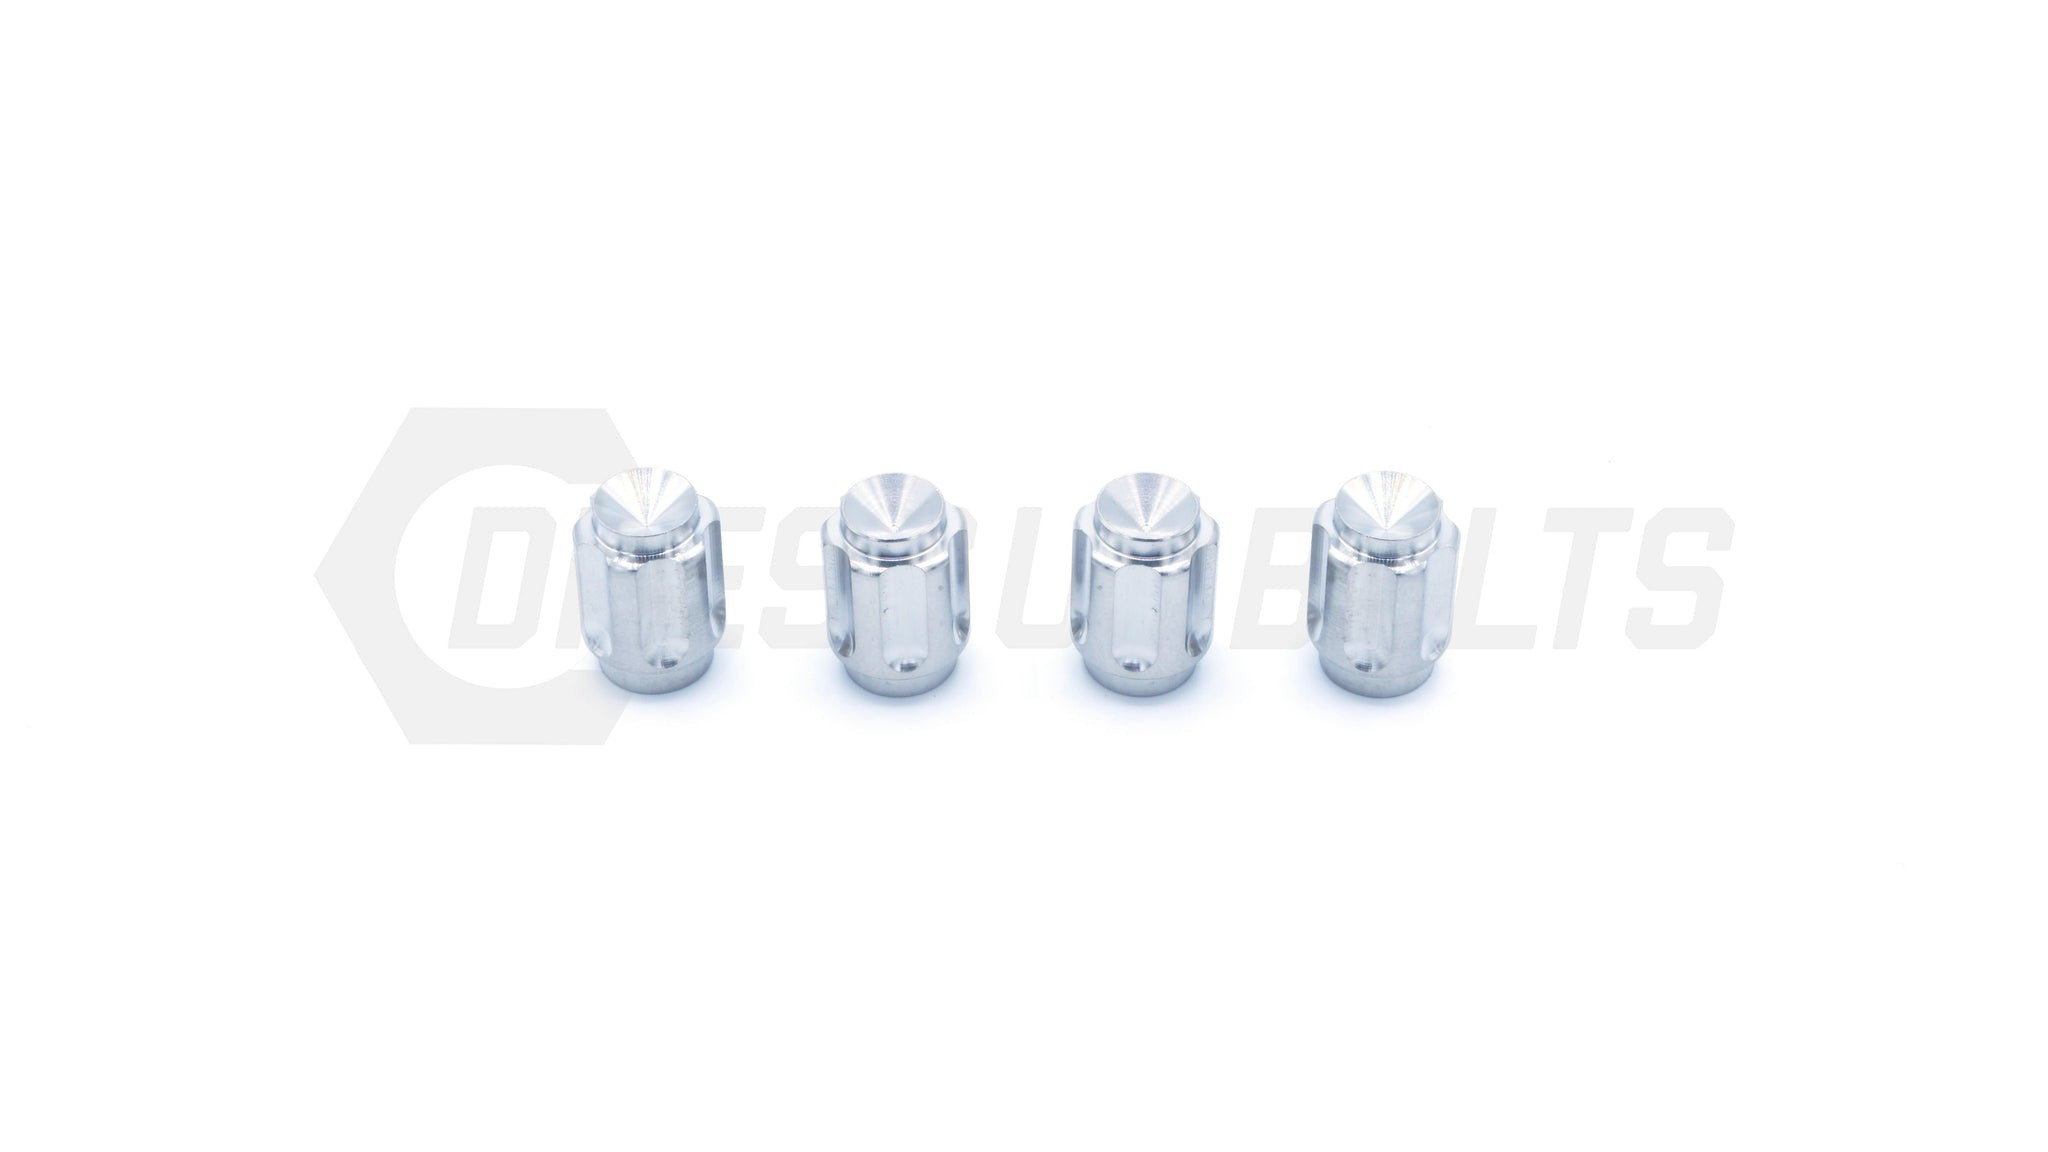 Dress Up Bolts Titanium Valve Stem Caps - Gear Design - DressUpBolts.com